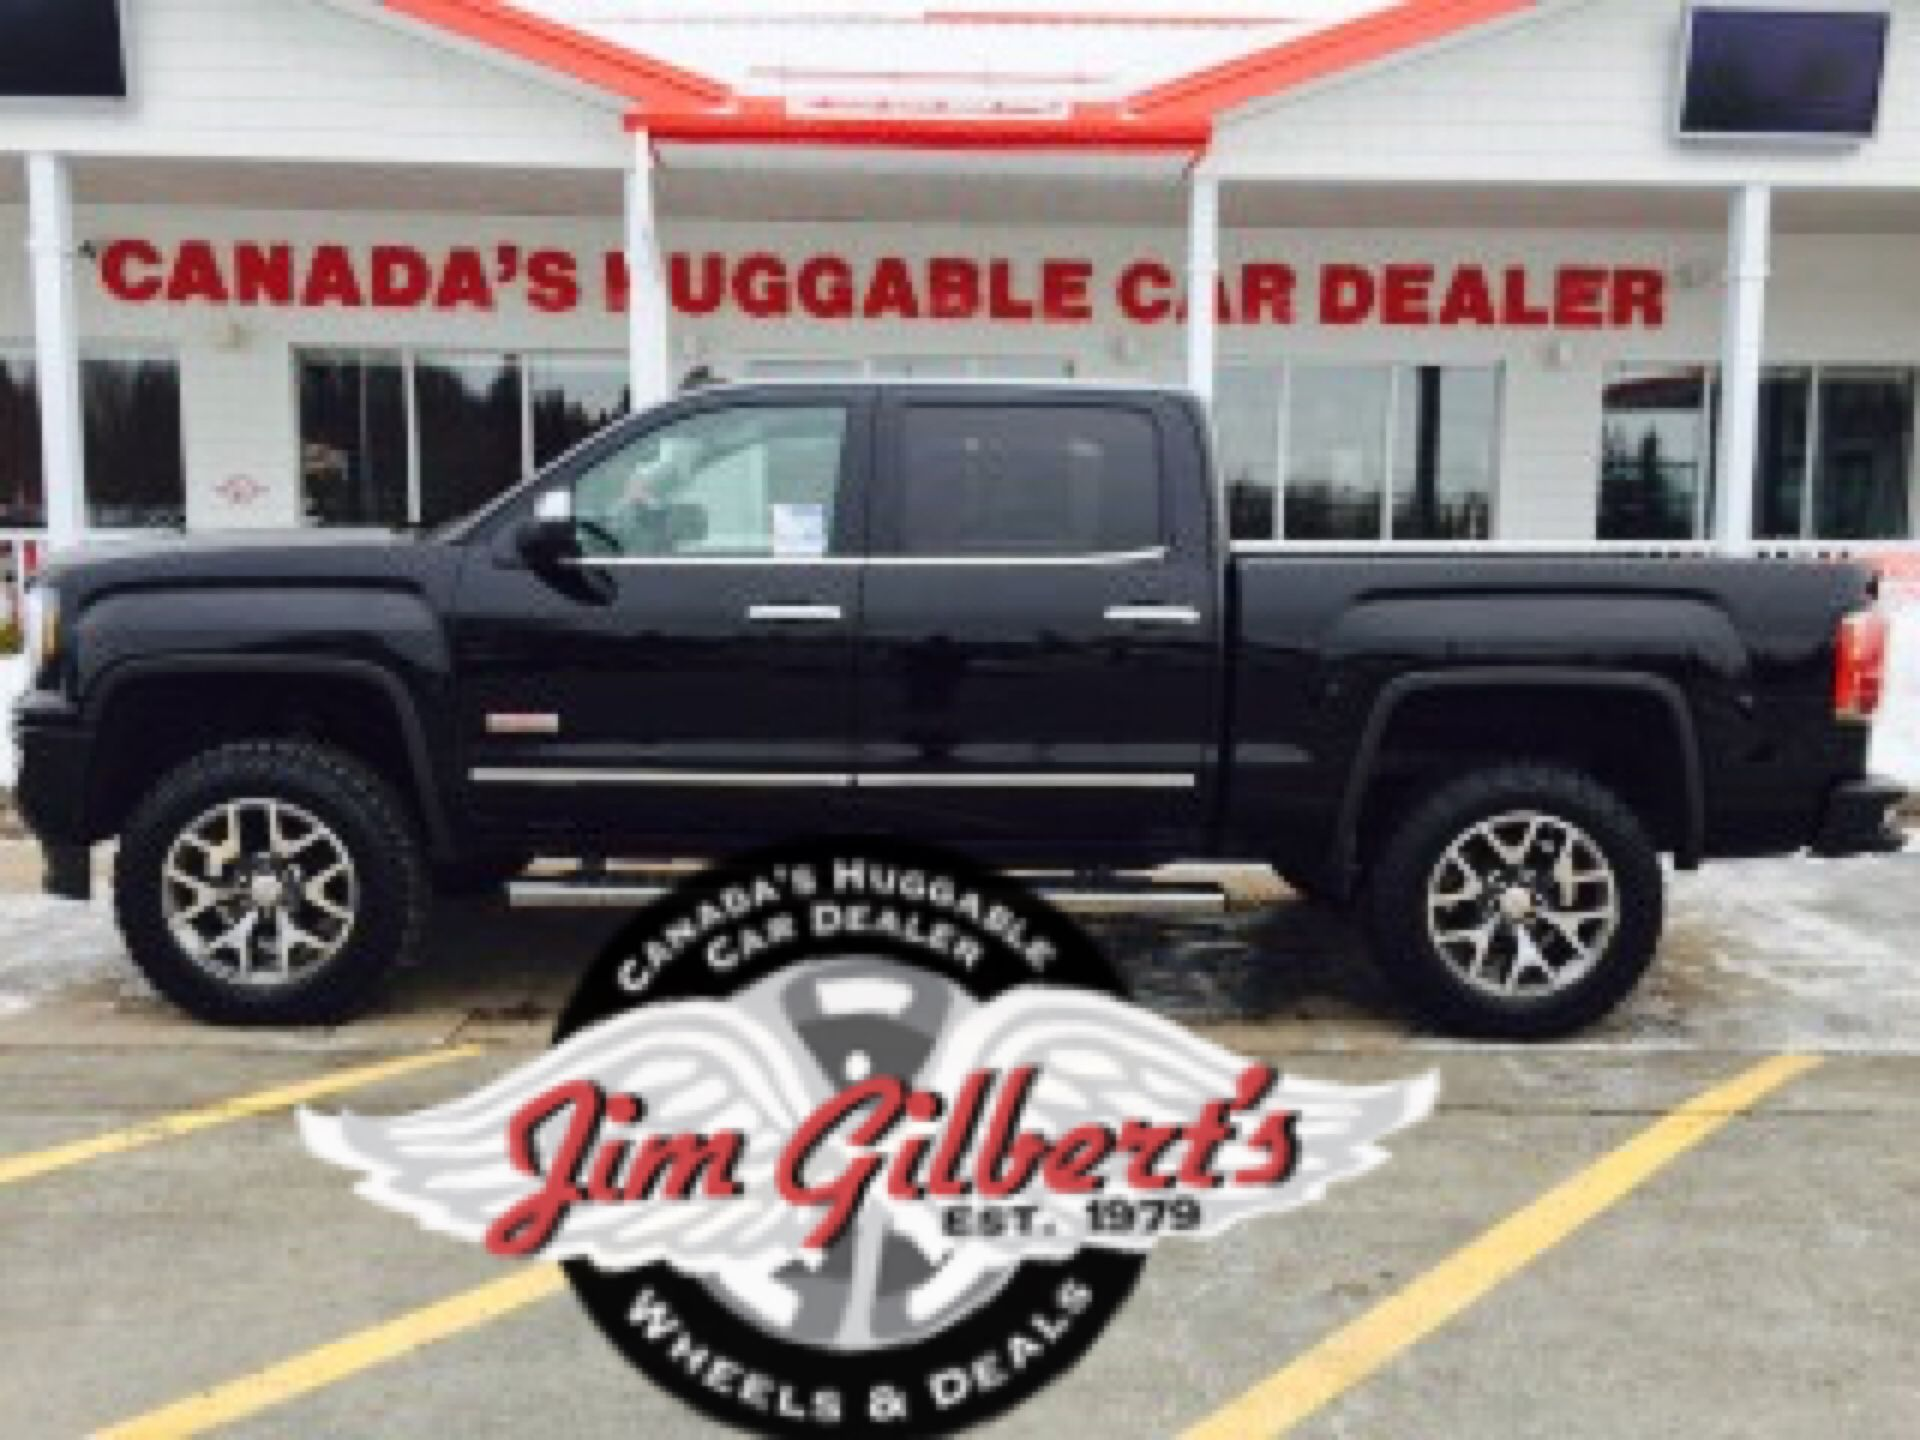 2016 Gmc Sierra 1500 Slt All Terrain Crew Cab 4x4 Remote Start Rear Camera Front Rear Park Assist Leather H All Terrain Tyres Cars For Sale Used Lift Kits